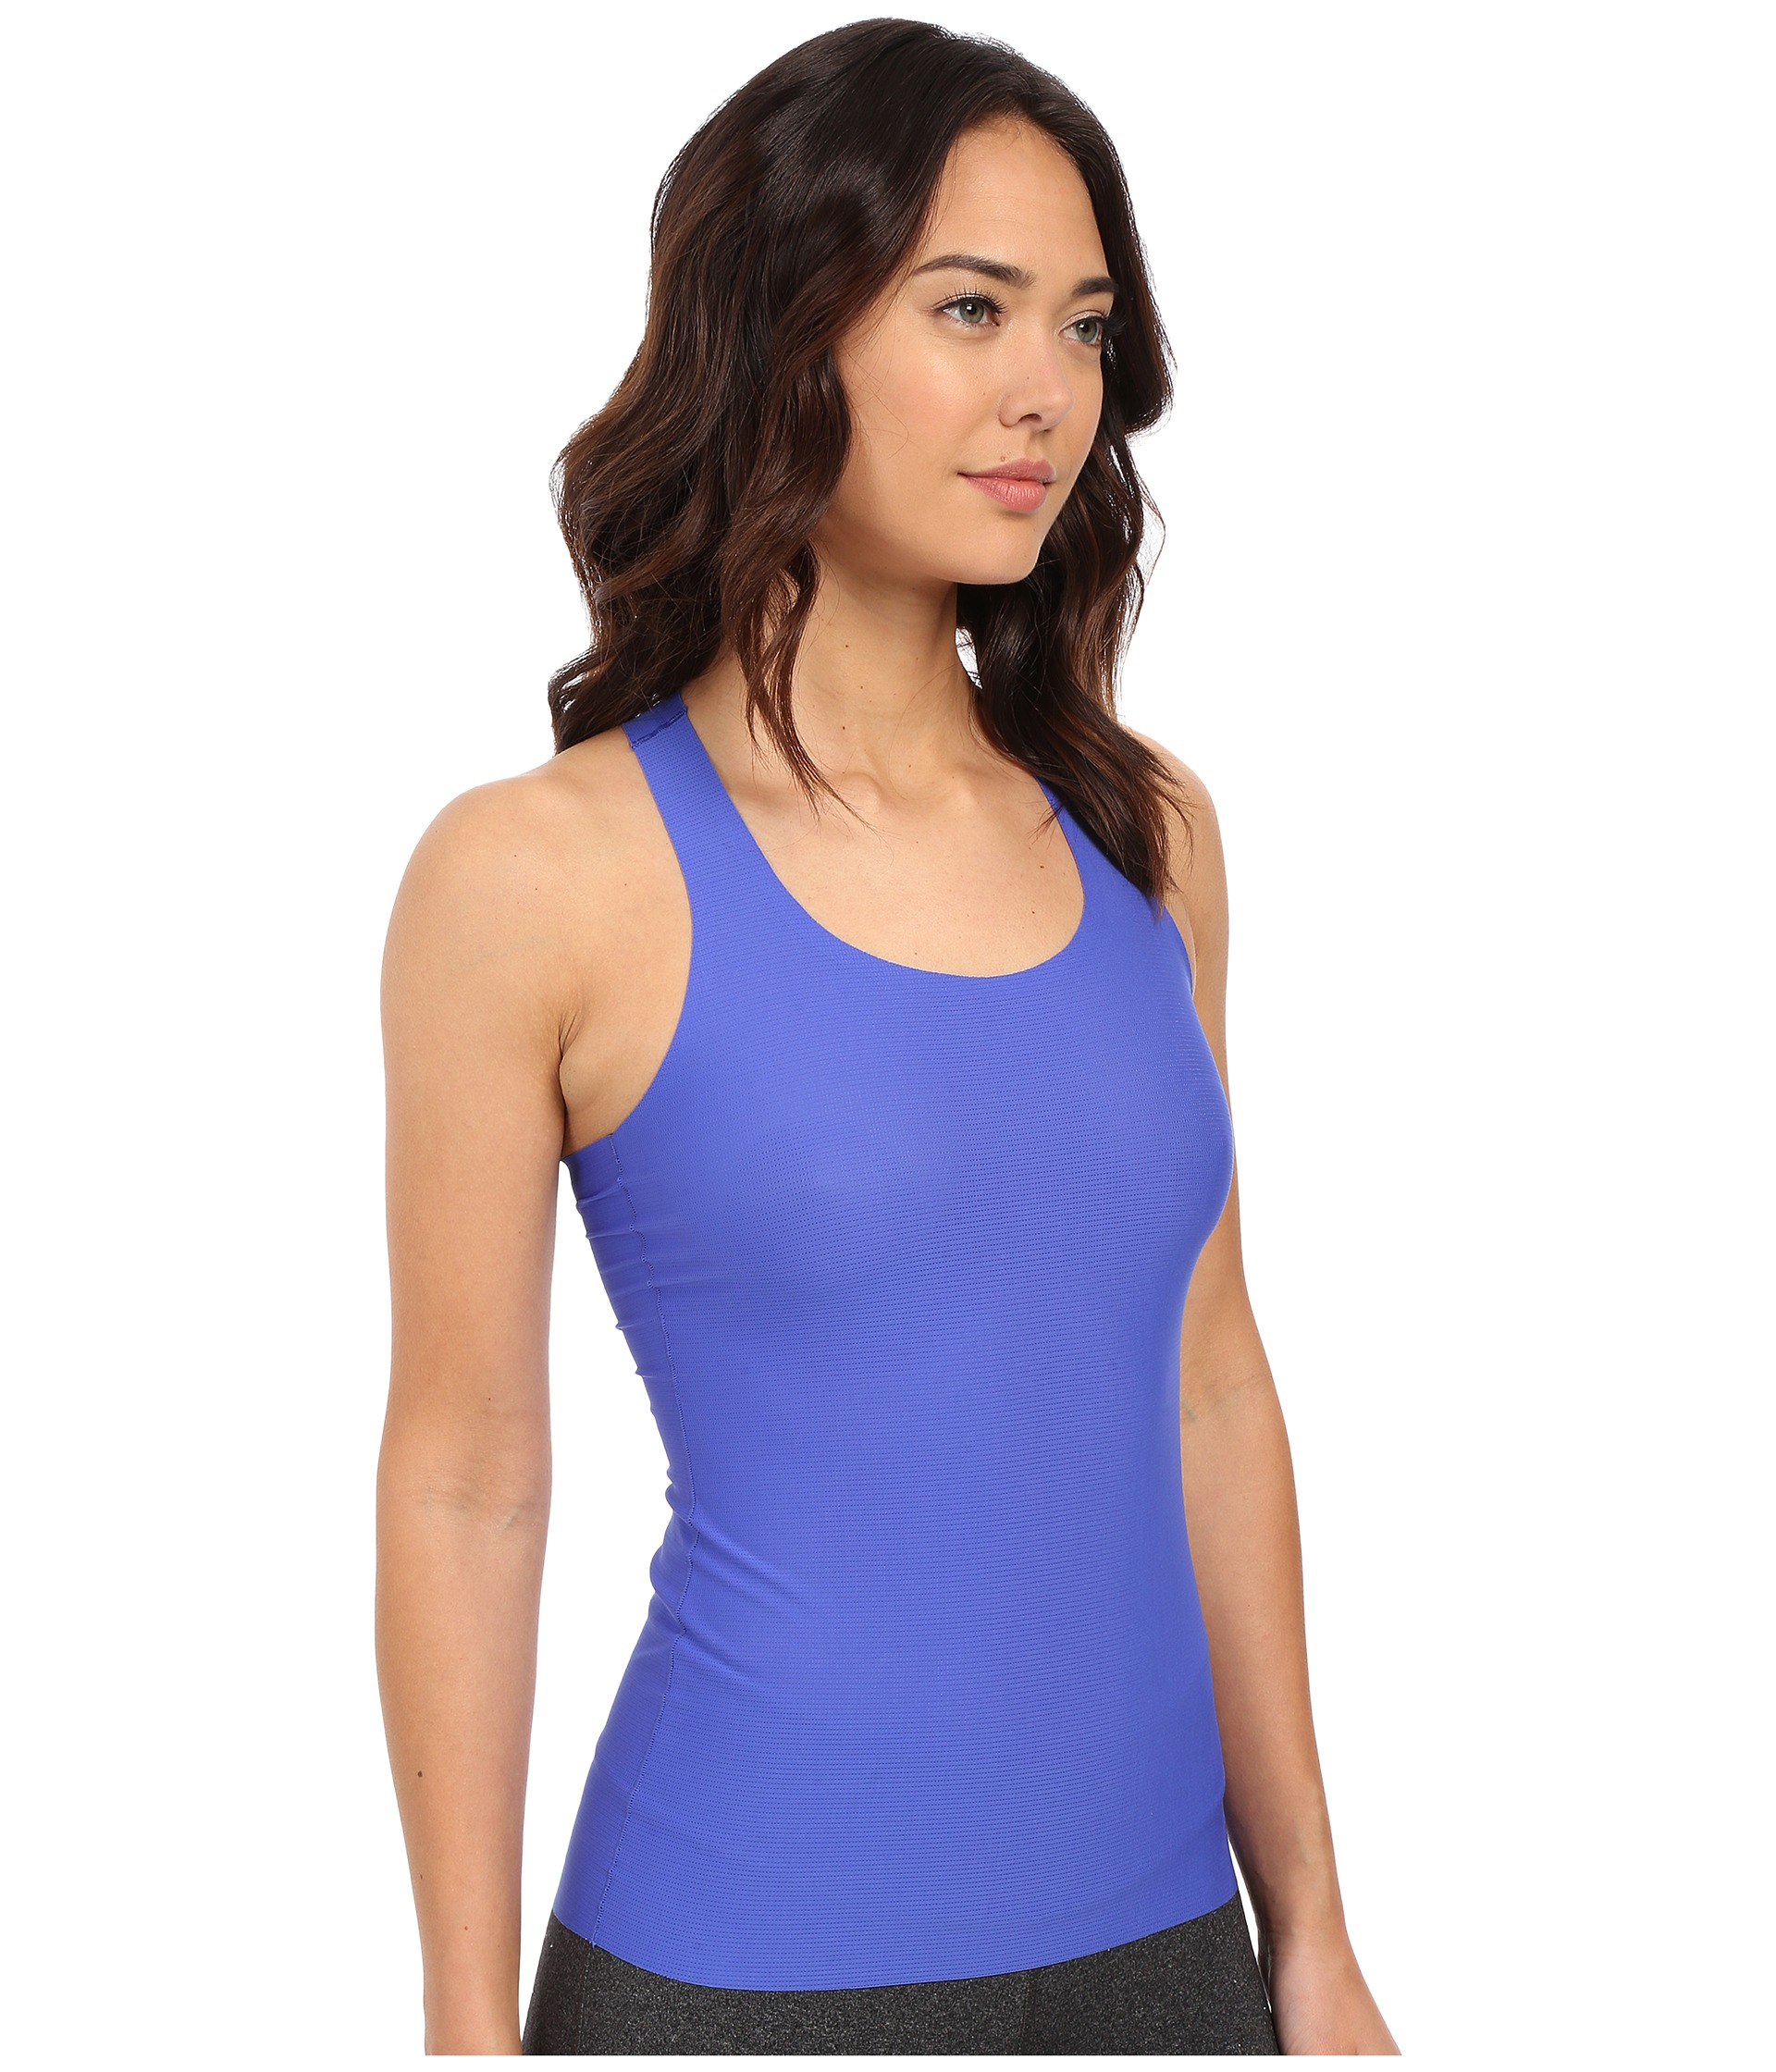 1a8cd2d5365c9 Lyst - Spanx Perforated Racerback Tank Top in Blue